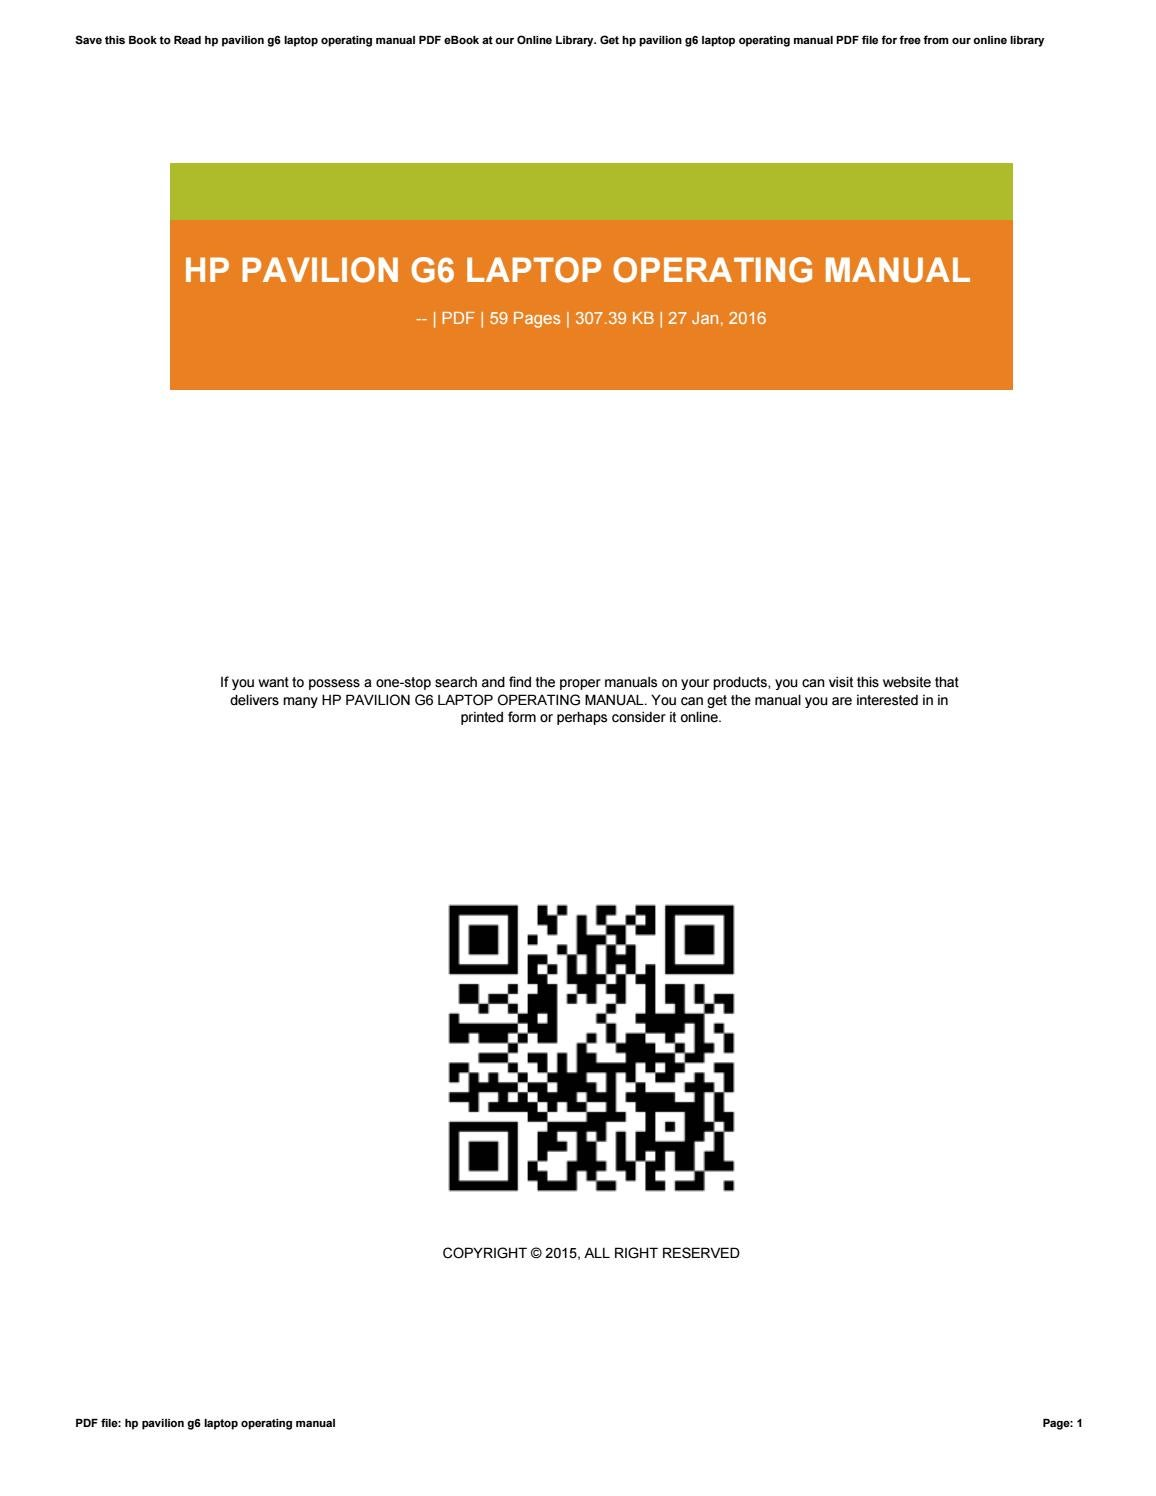 hp pavilion g6 laptop operating manual by phpbb33 issuu rh issuu com hp pavilion g6 manual download hp pavilion g6 user manual